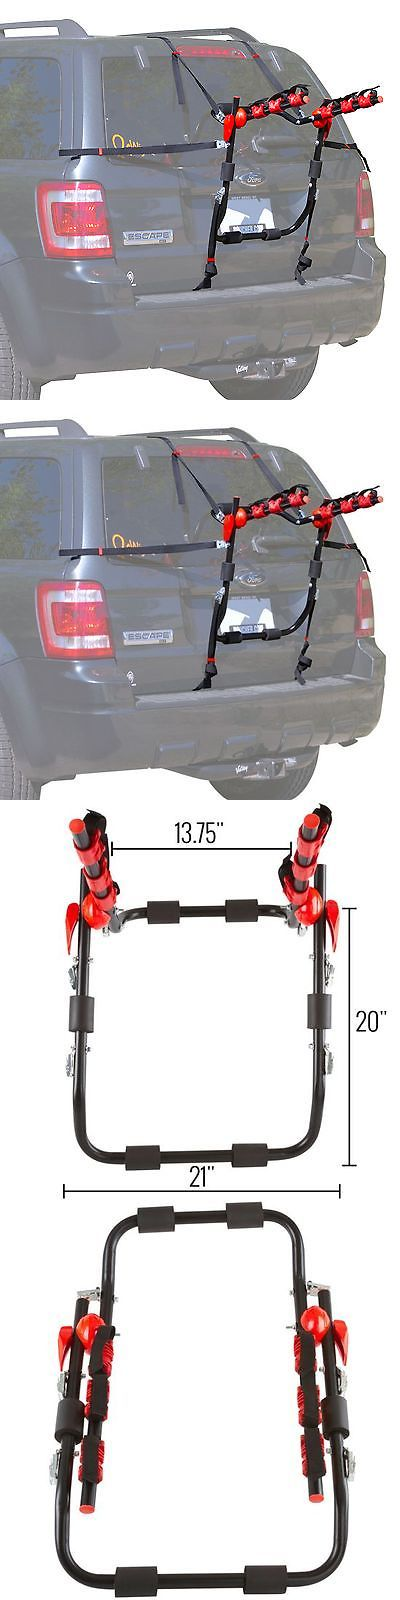 Car and Truck Racks 177849: Trunk-Mount 3-Bike Carrier Hatchback Suv Or Car Sport Bicycle Rack -> BUY IT NOW ONLY: $44.99 on eBay!